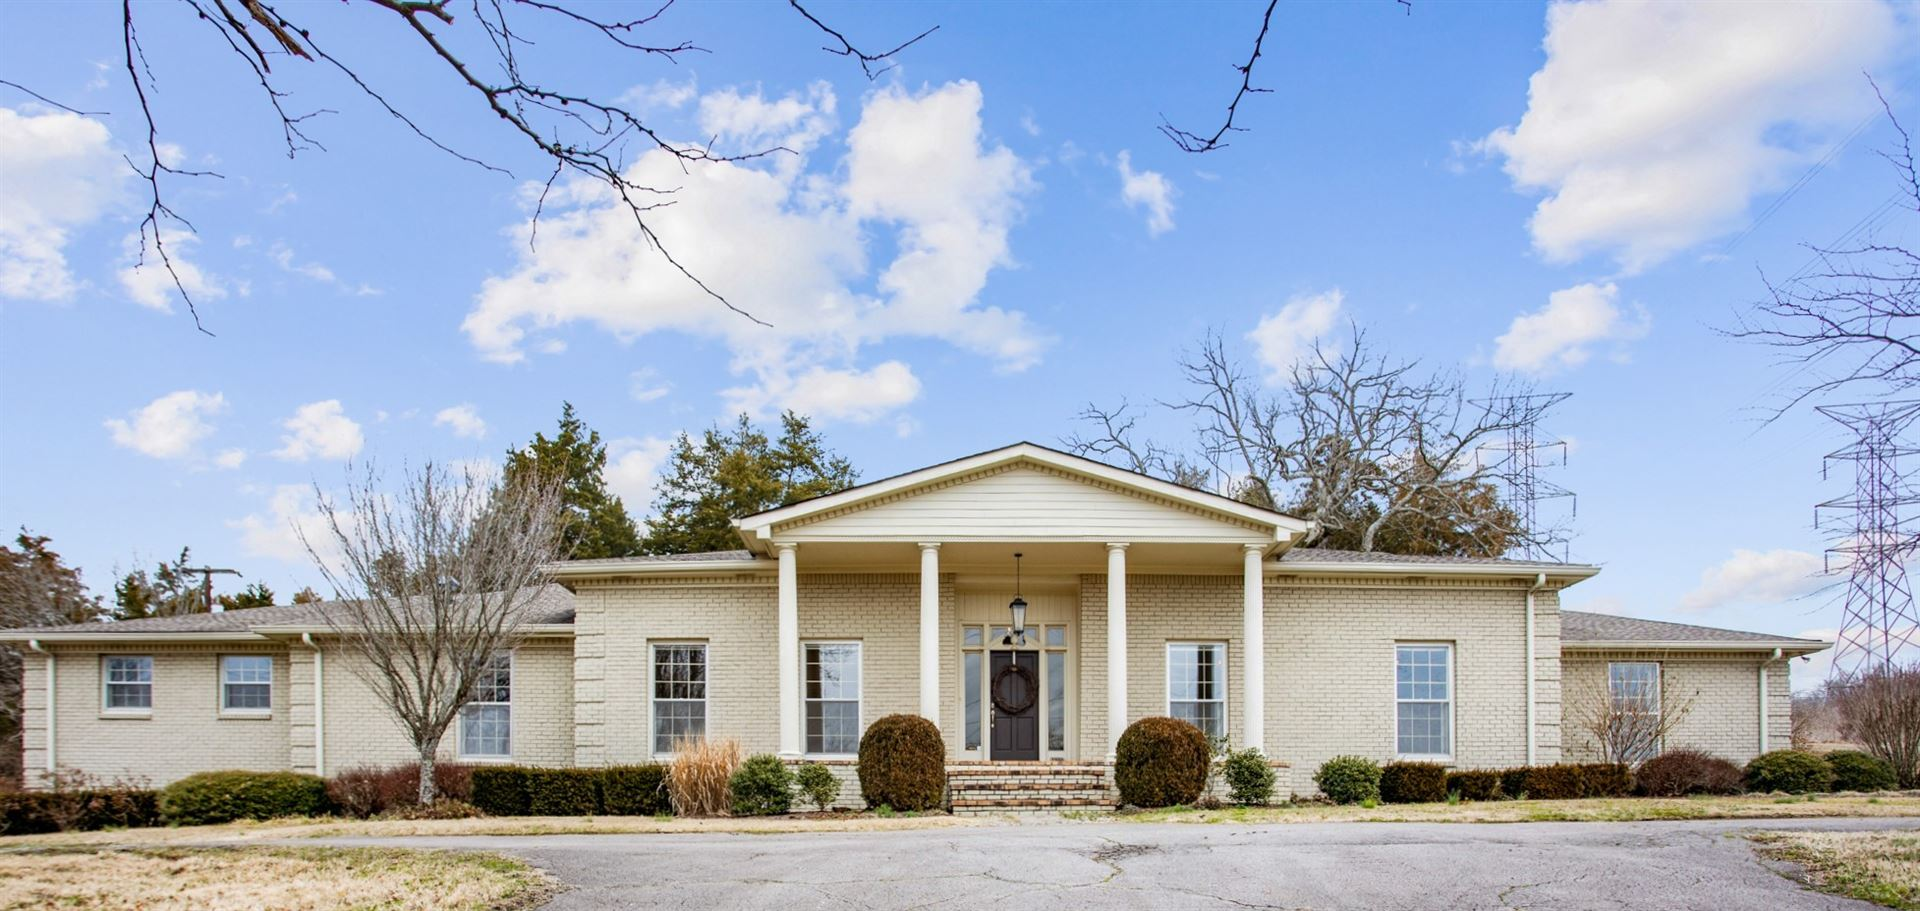 1946 Old Hickory Blvd, Brentwood, TN 37027 - MLS#: 2233307